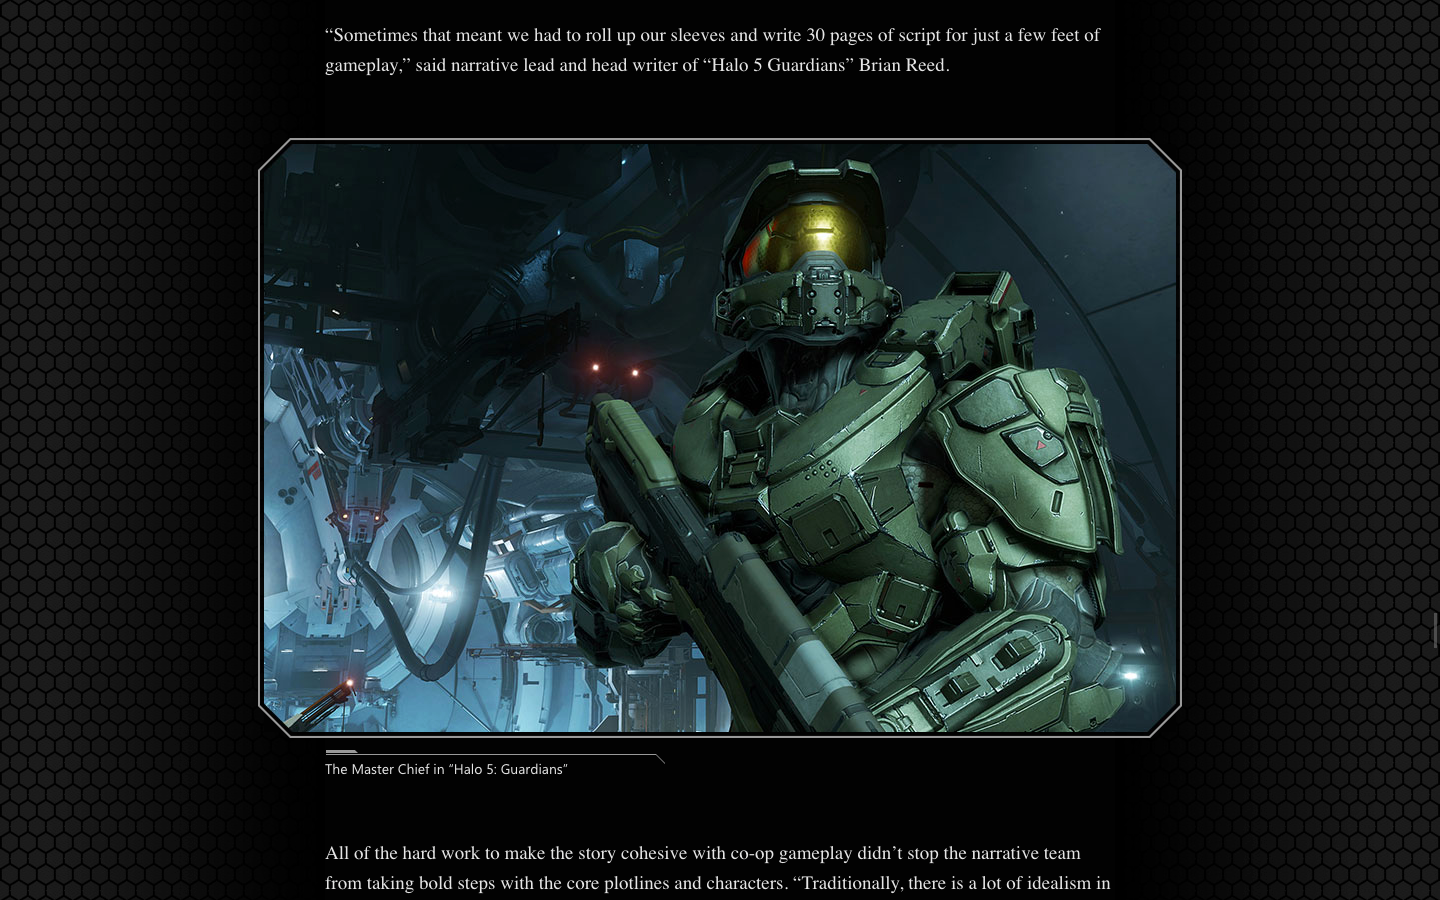 msft_halo_06.png